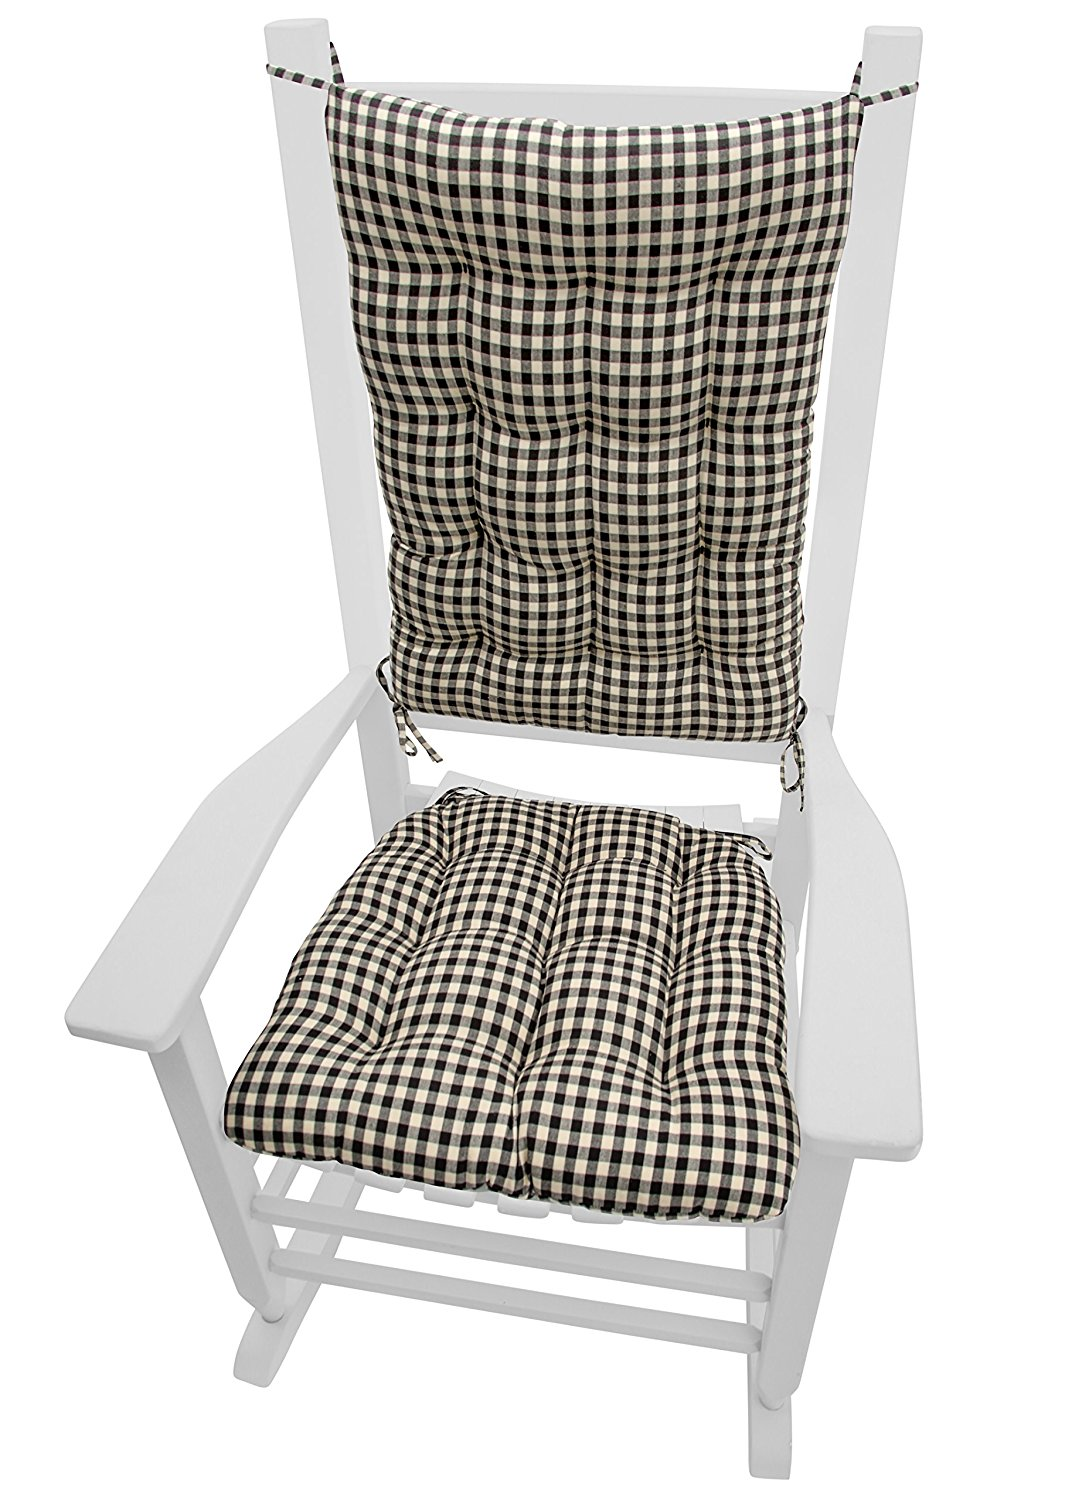 Baby Rocking Chair Cushions | Rocking Chair Cushion | Rocking Chair Cushions Target